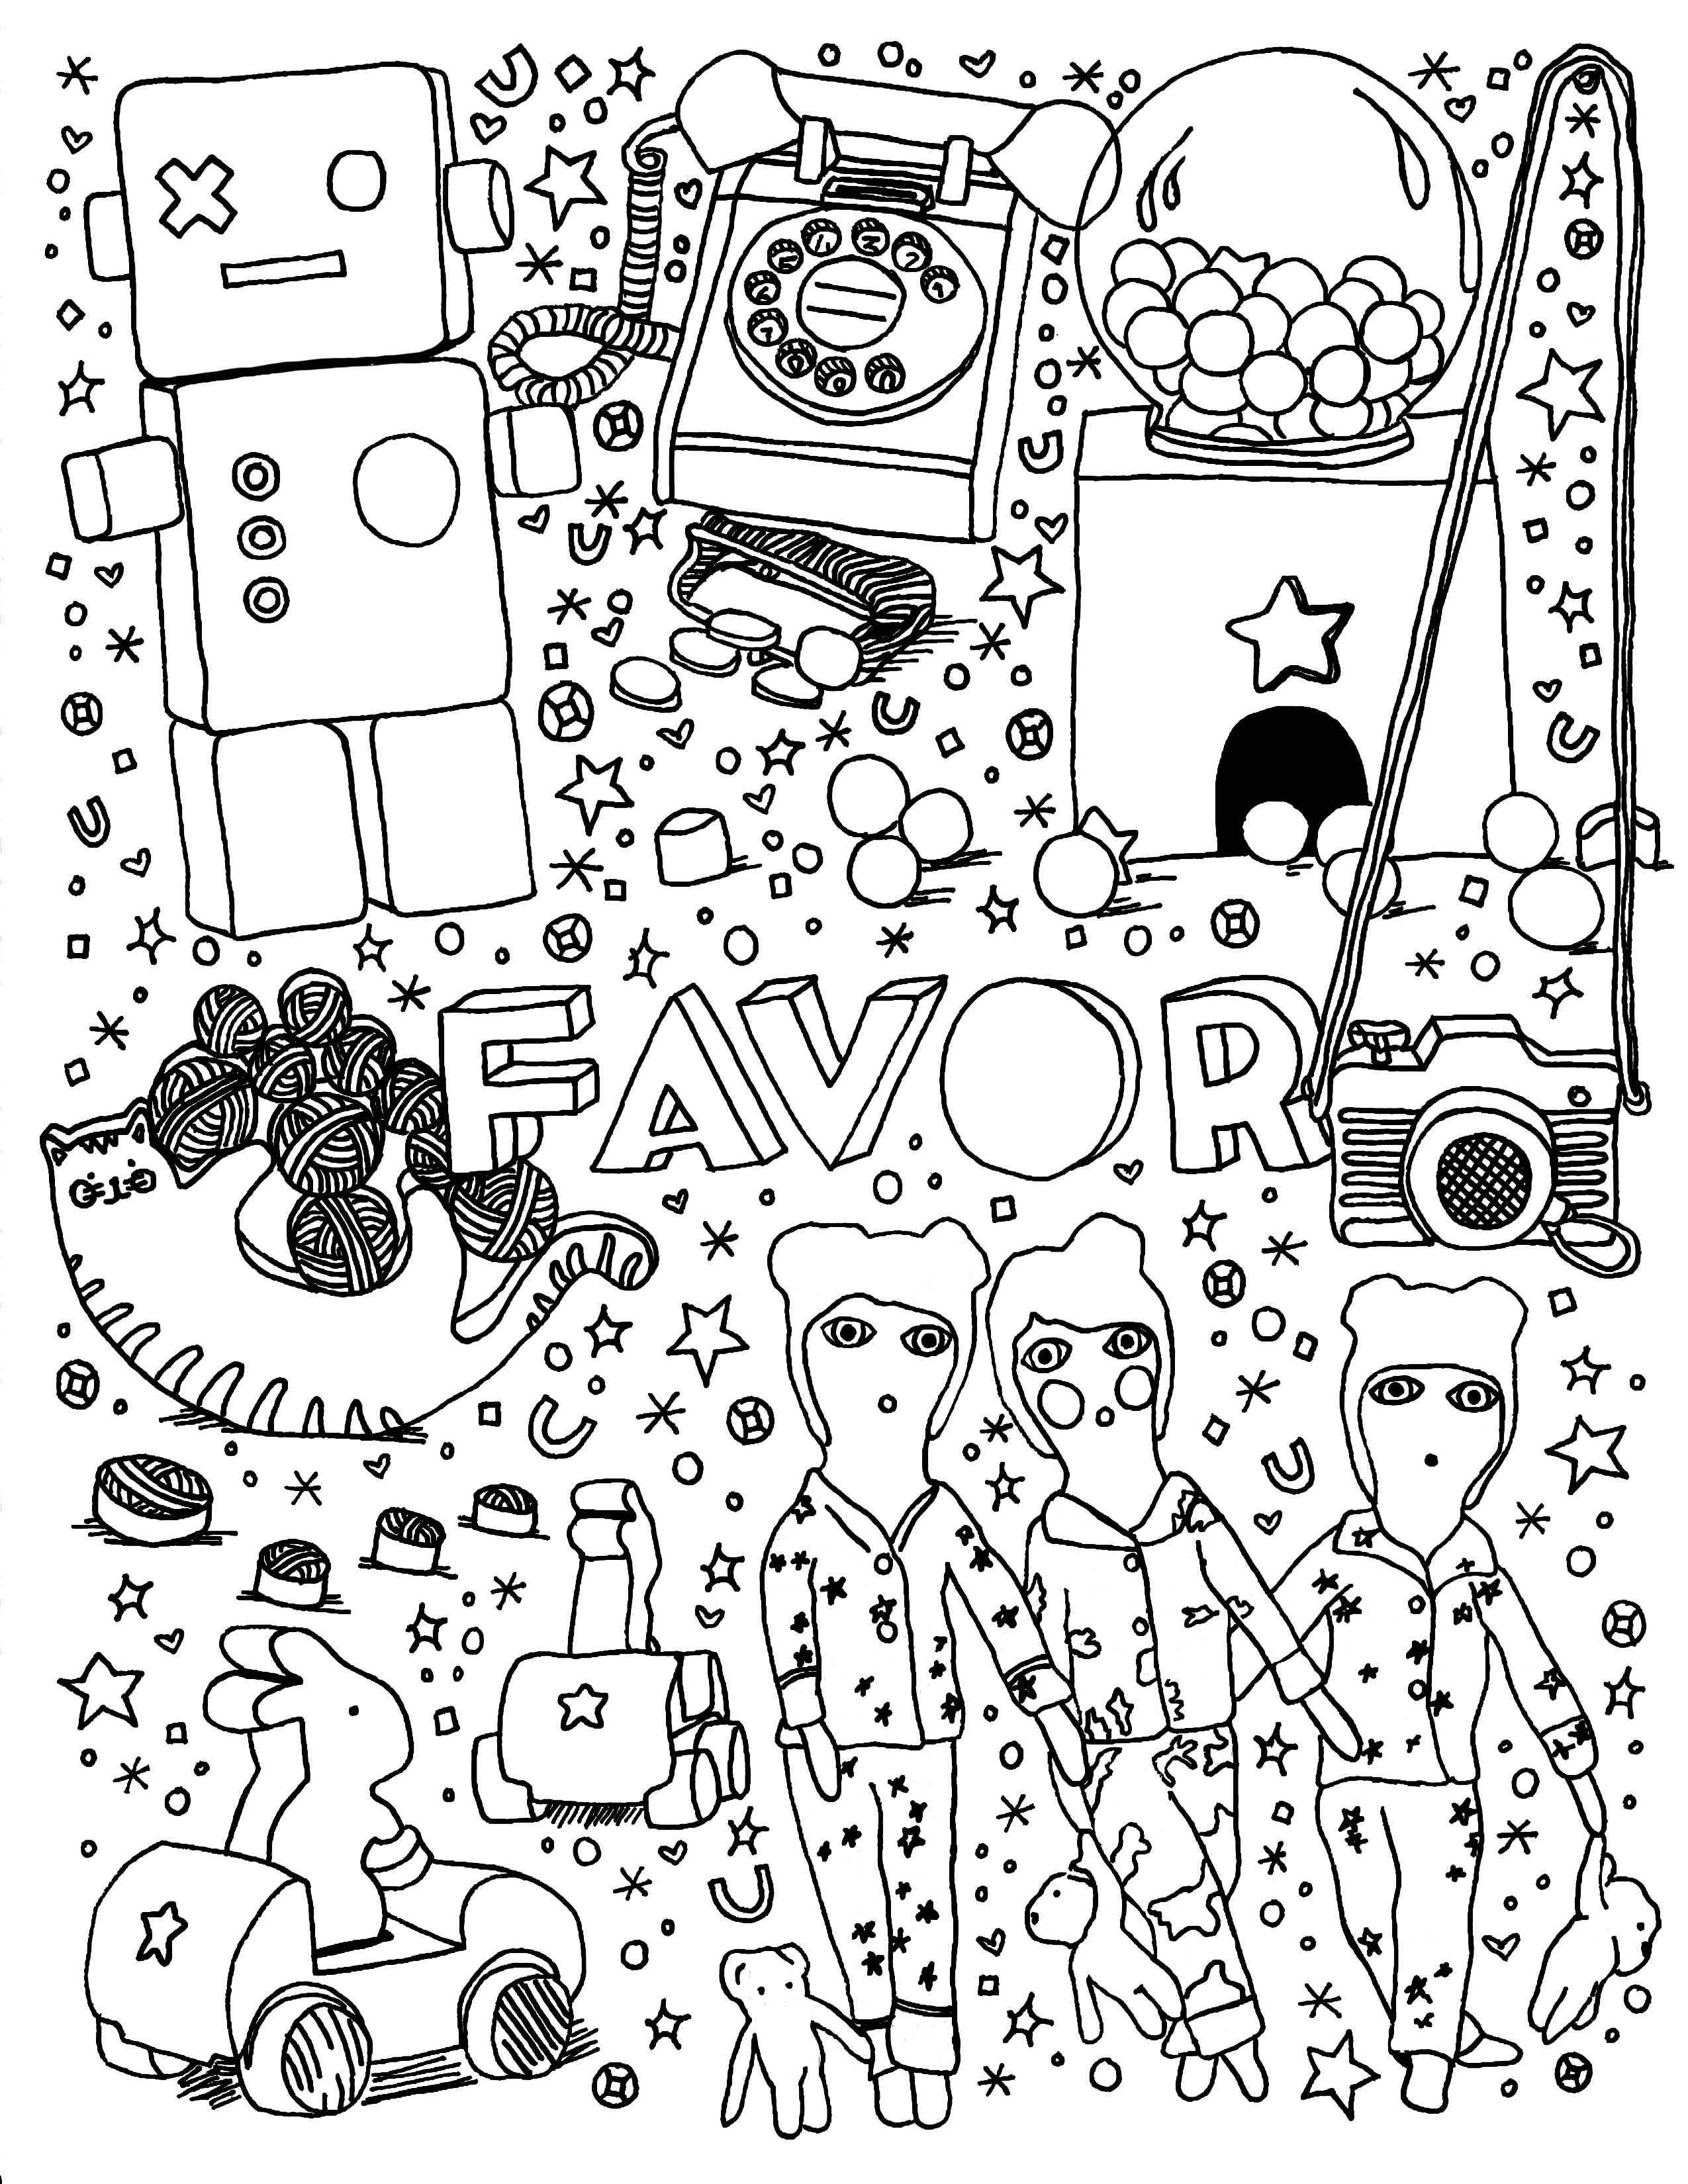 Favor coloring page